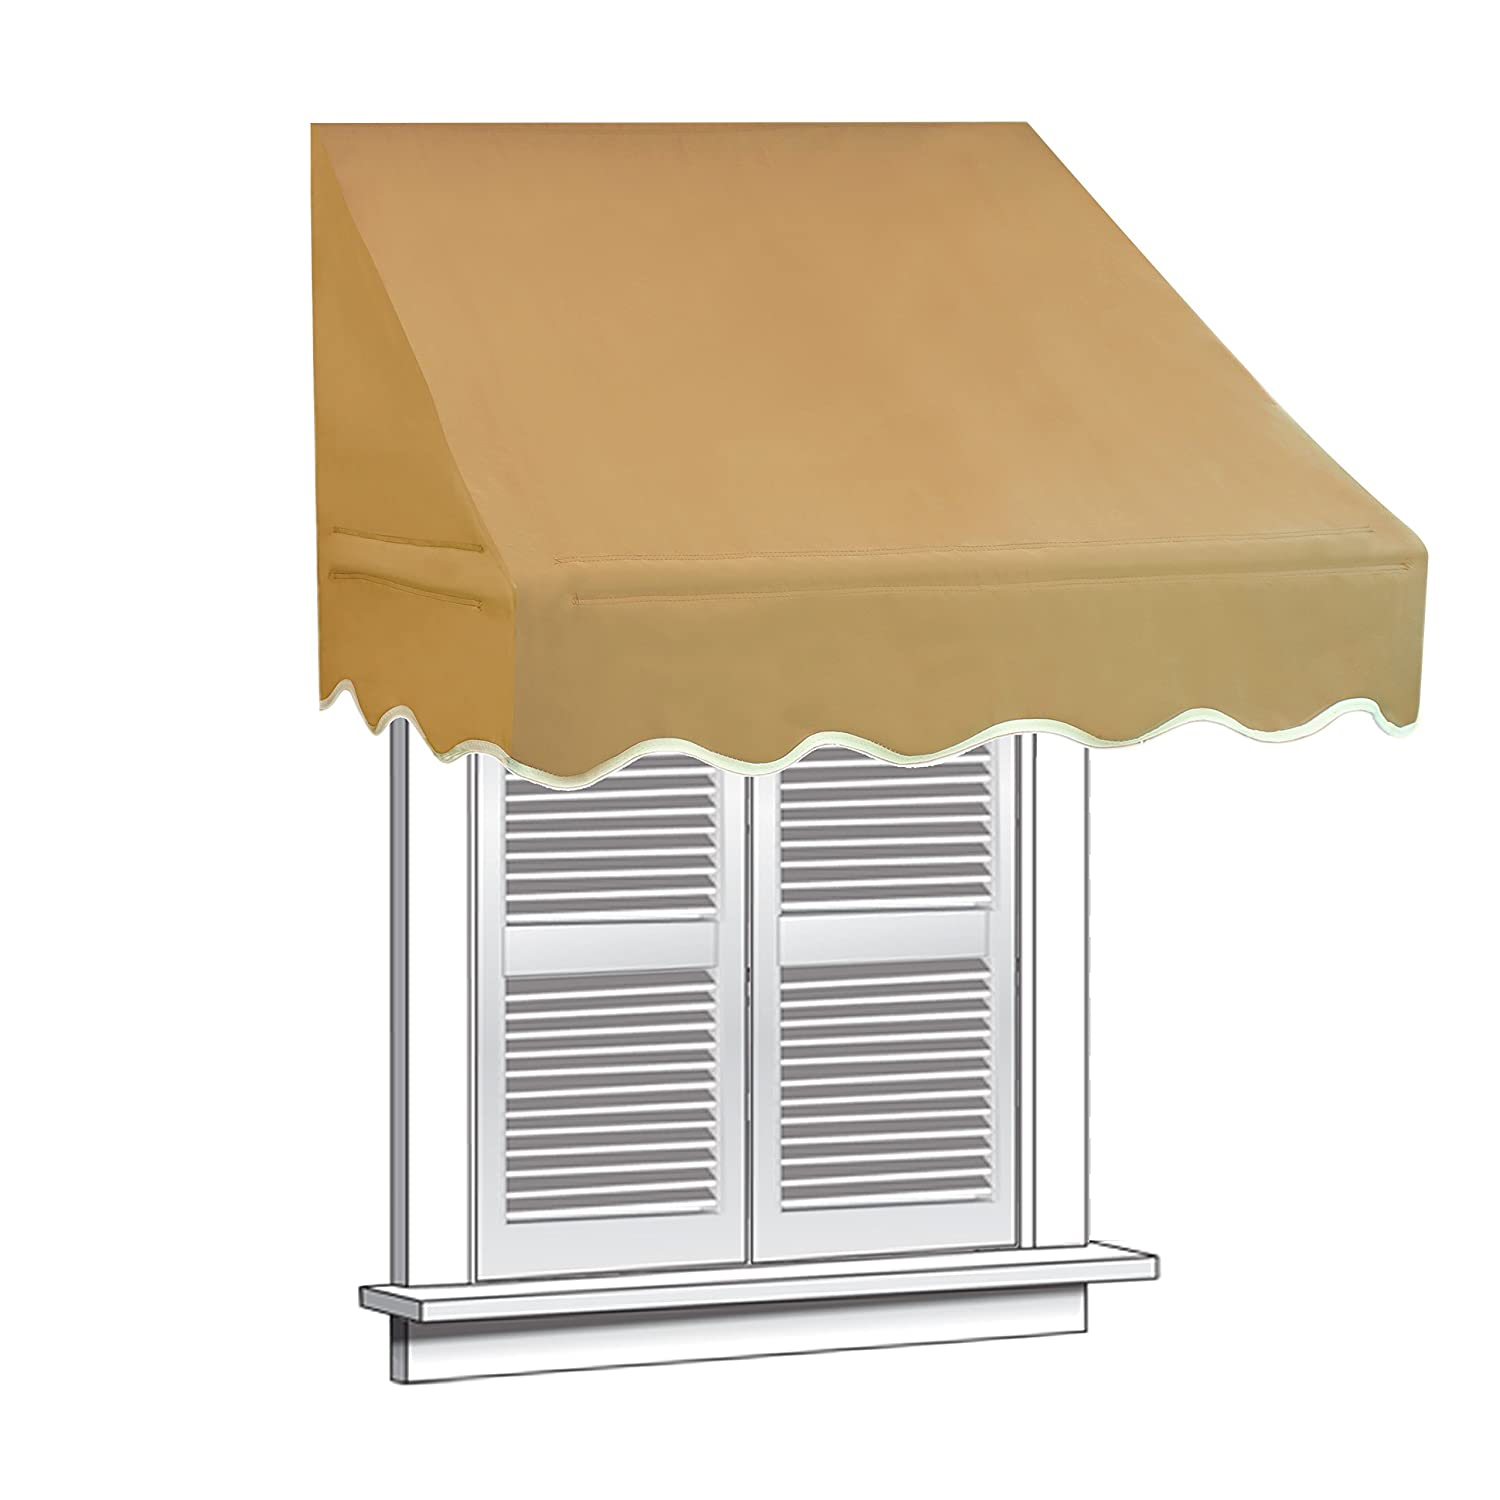 Aleko Window Awning Door Canopy Decorator, 4 Feet X 2 Feet, Sand      Amazon.com